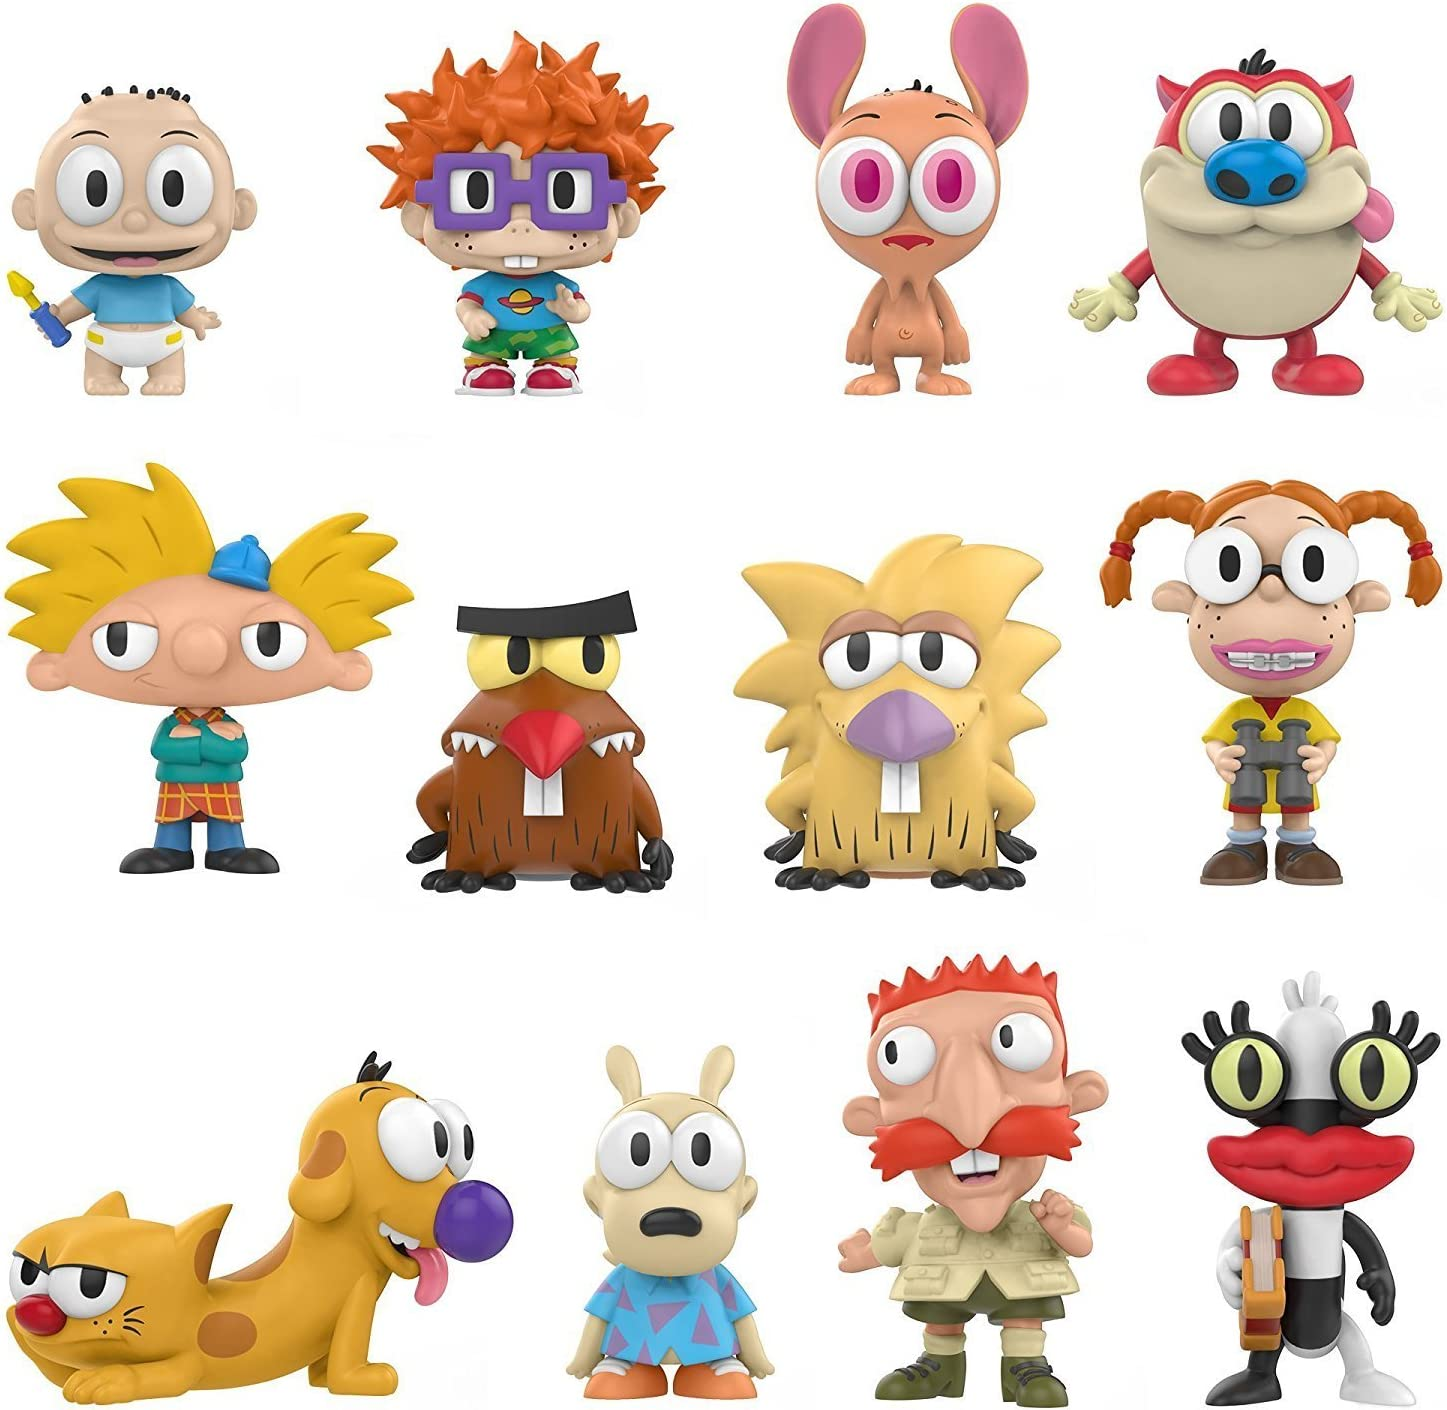 The 90s Ren /& Stimpy Nick Figs Figure Collection Nickelodeon Mini Character Figure Cartoon Bundle Happy Joy 2 Pack Exclusive Dorbs Blind Box Minis